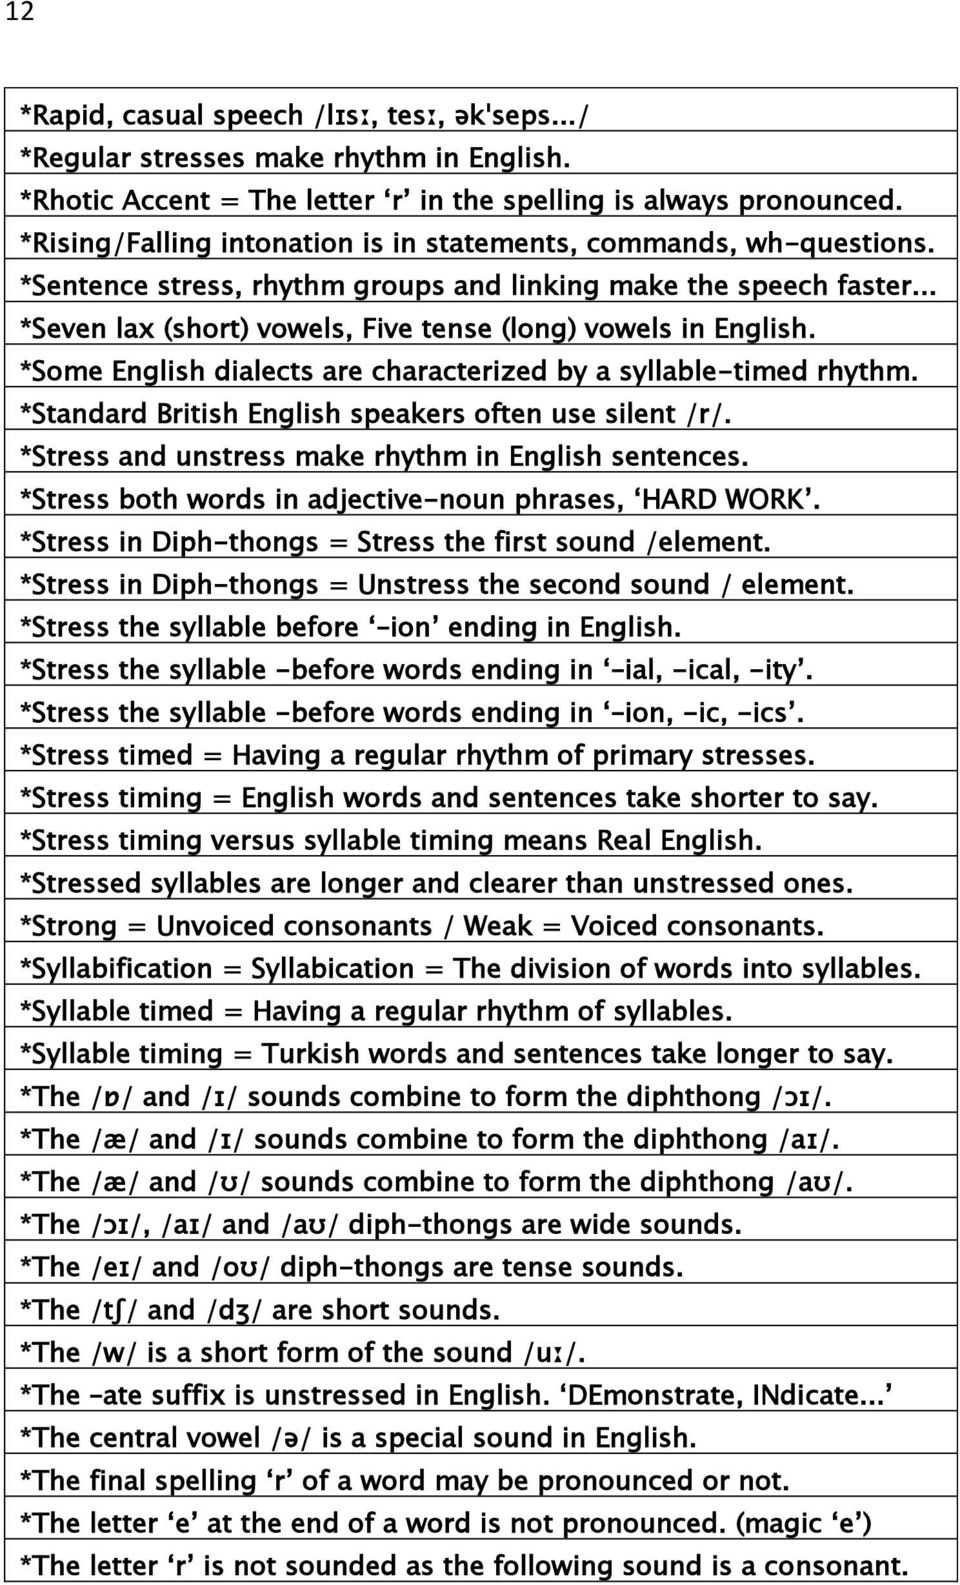 *Some English dialects are characterized by a syllable-timed rhythm. *Standard British English speakers often use silent /r/. *Stress and unstress make rhythm in English sentences.